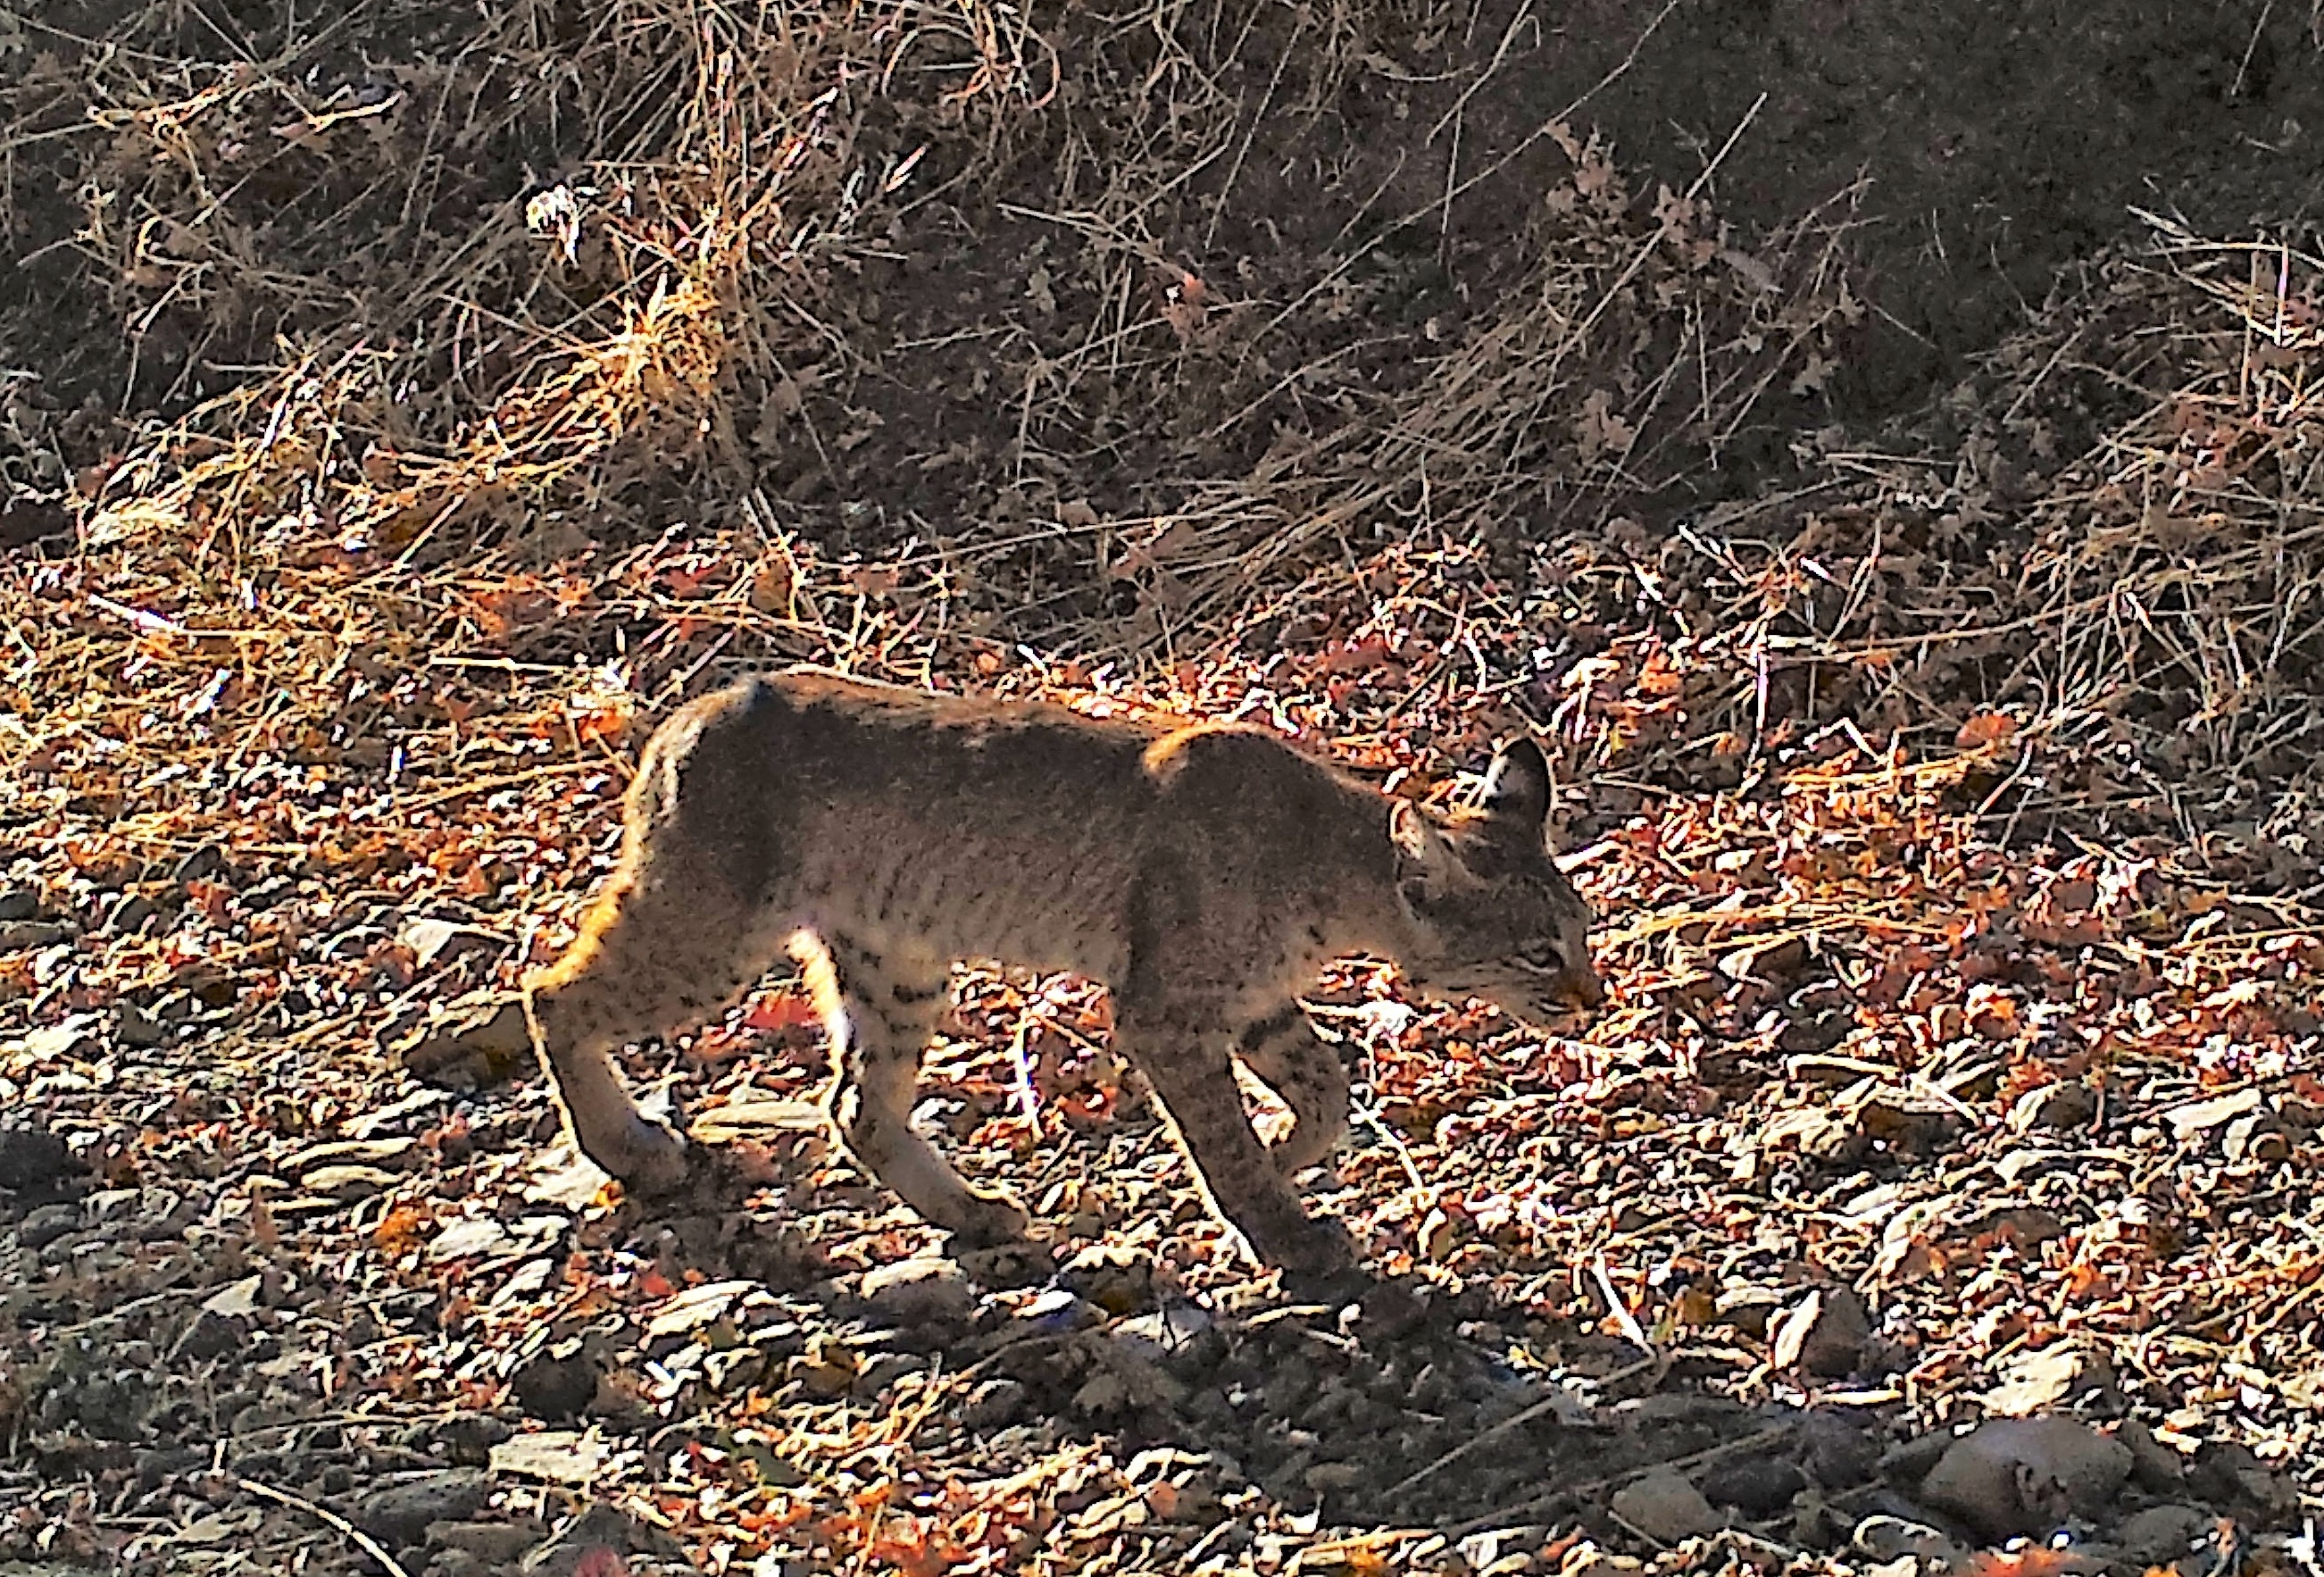 Bobcat at OSA Preserve on 10-8-17-799626-edited.jpg